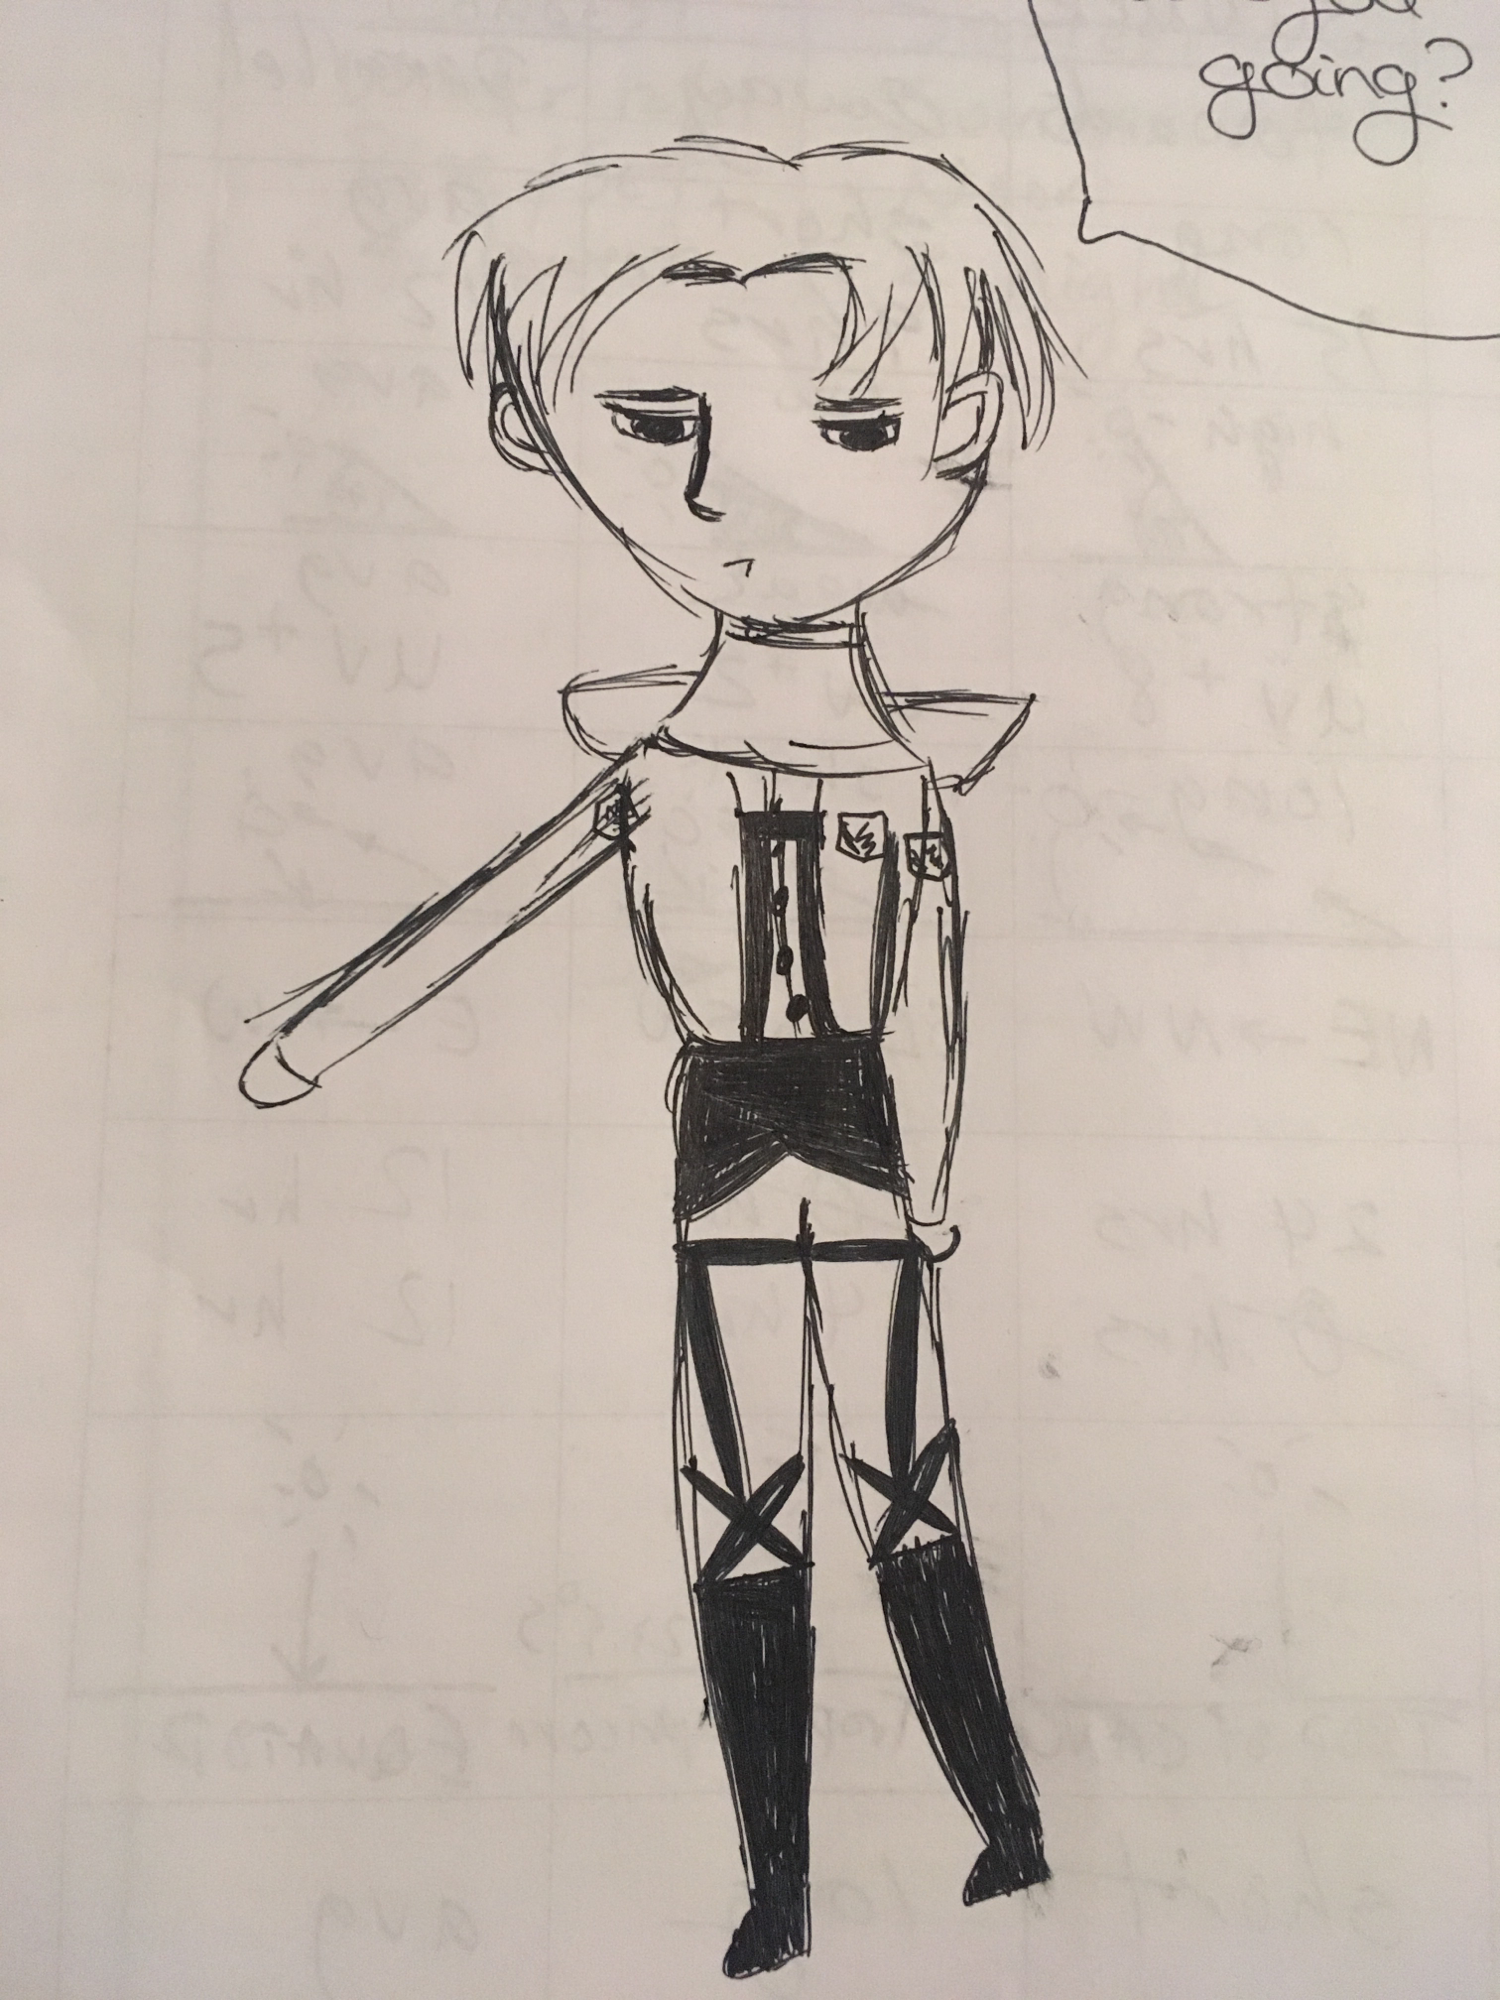 Got any suggestions for how to possibly draw Levi any better, cause it's okay but I'm not satisfied.